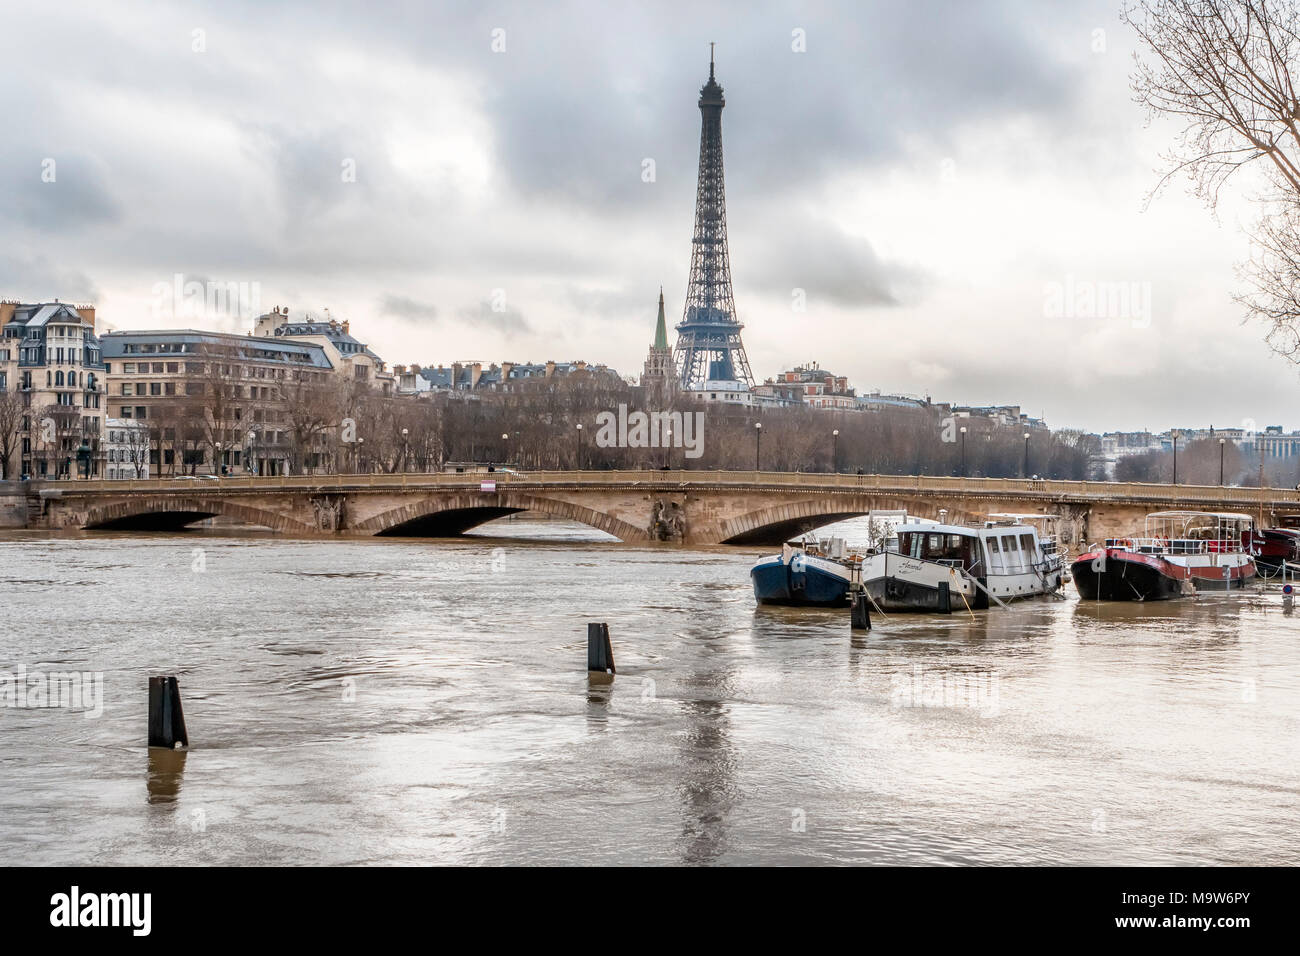 Pont des Invalides submerged in the Paris flood of January 2018 and stranded boats unable to travel on the River Seine due to high water levels - Stock Image